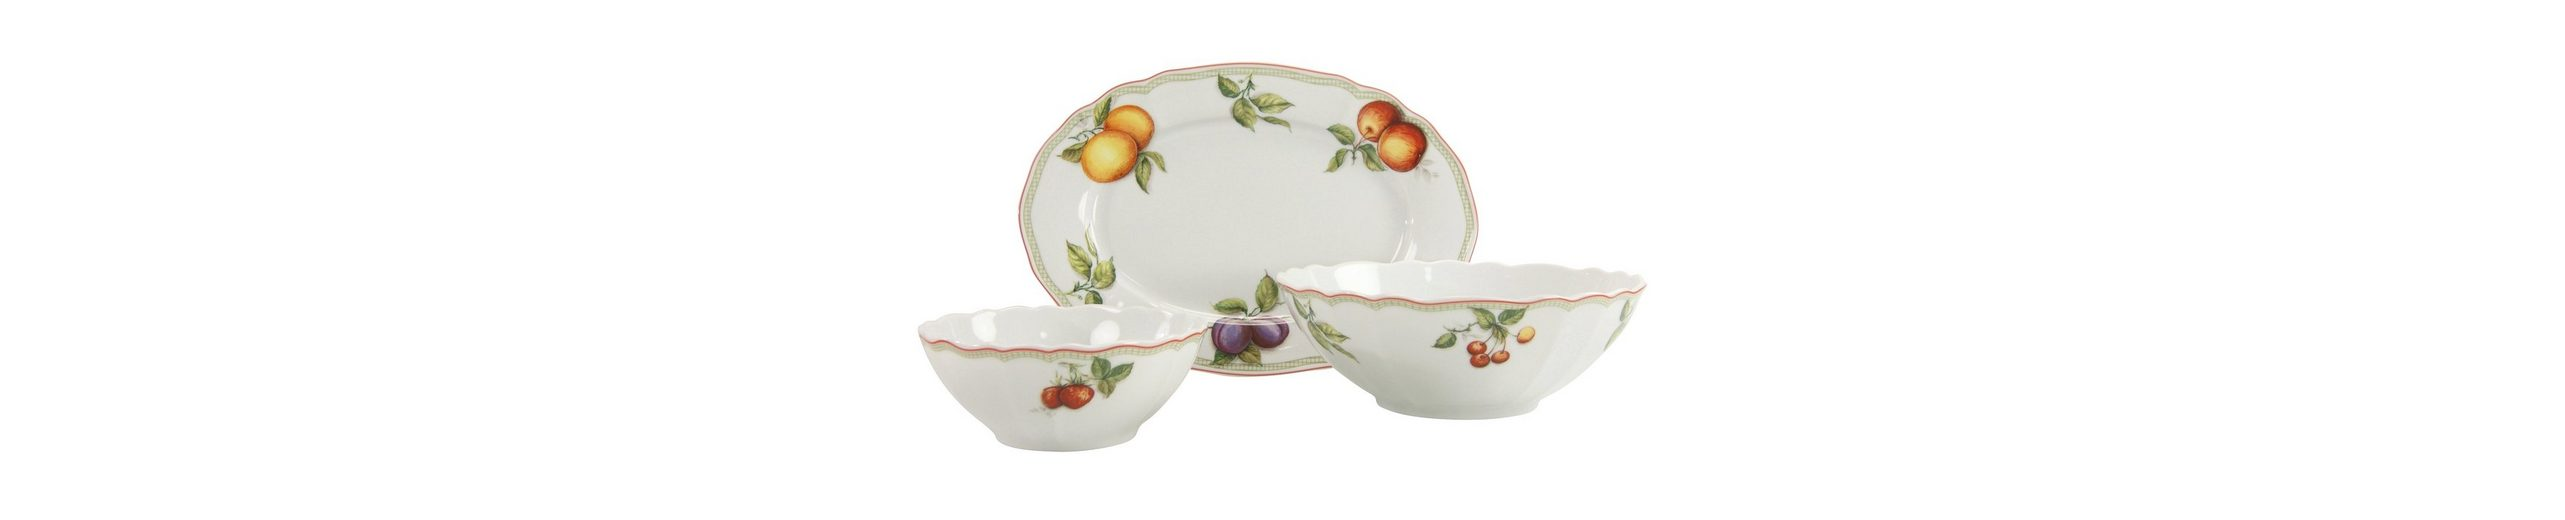 Servier-Set, 3-teilig, »Flora Orchard«